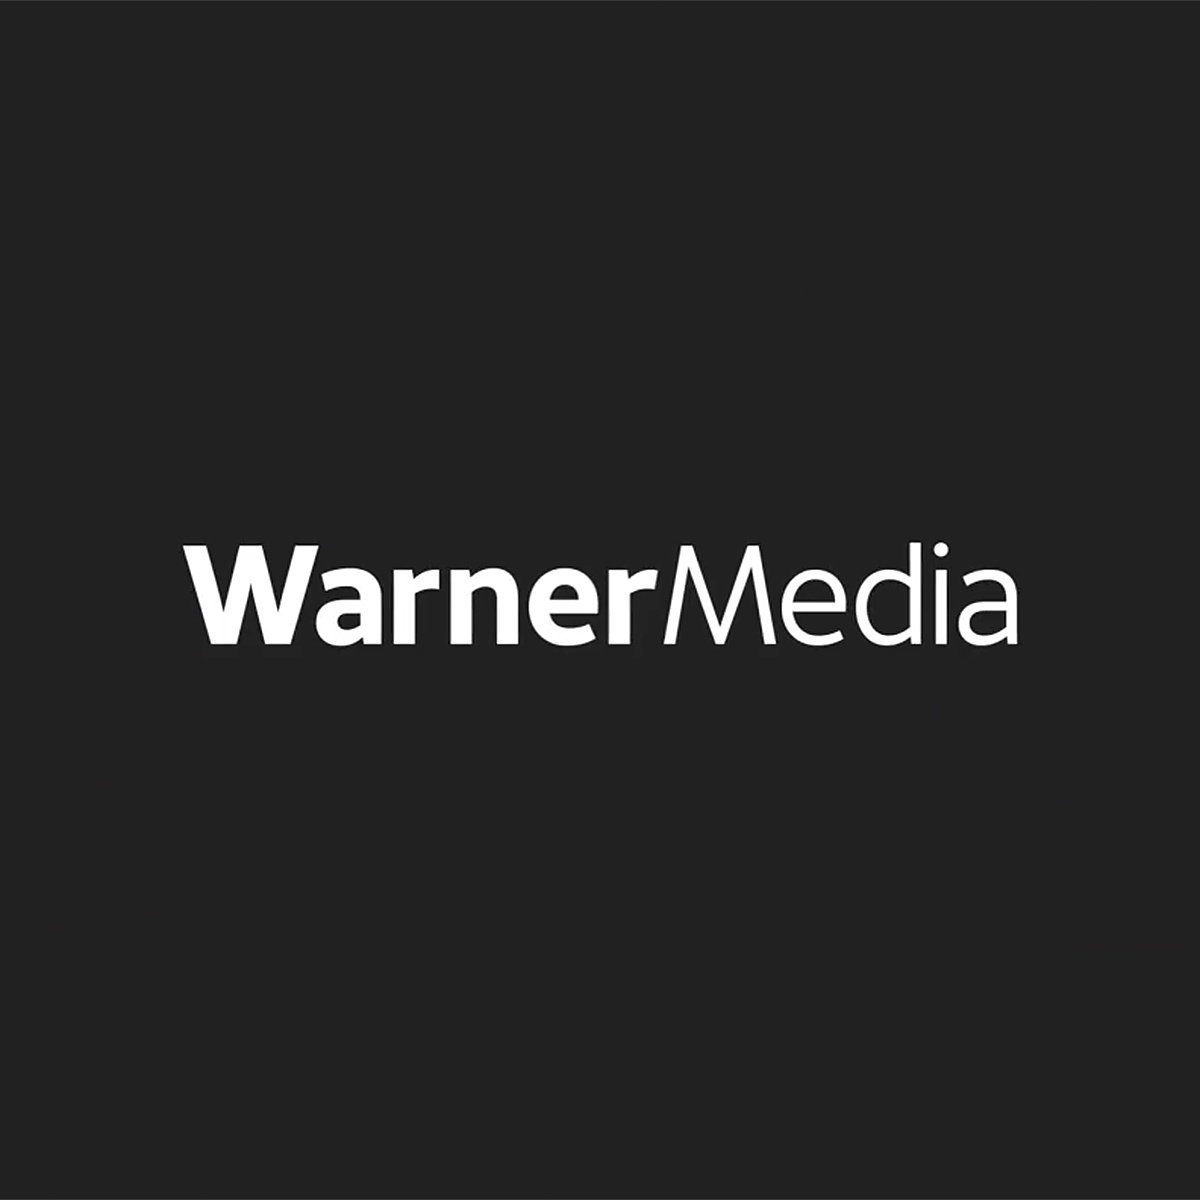 Wolff Olins Delivers Kinetic Rebrand for WarnerMedia